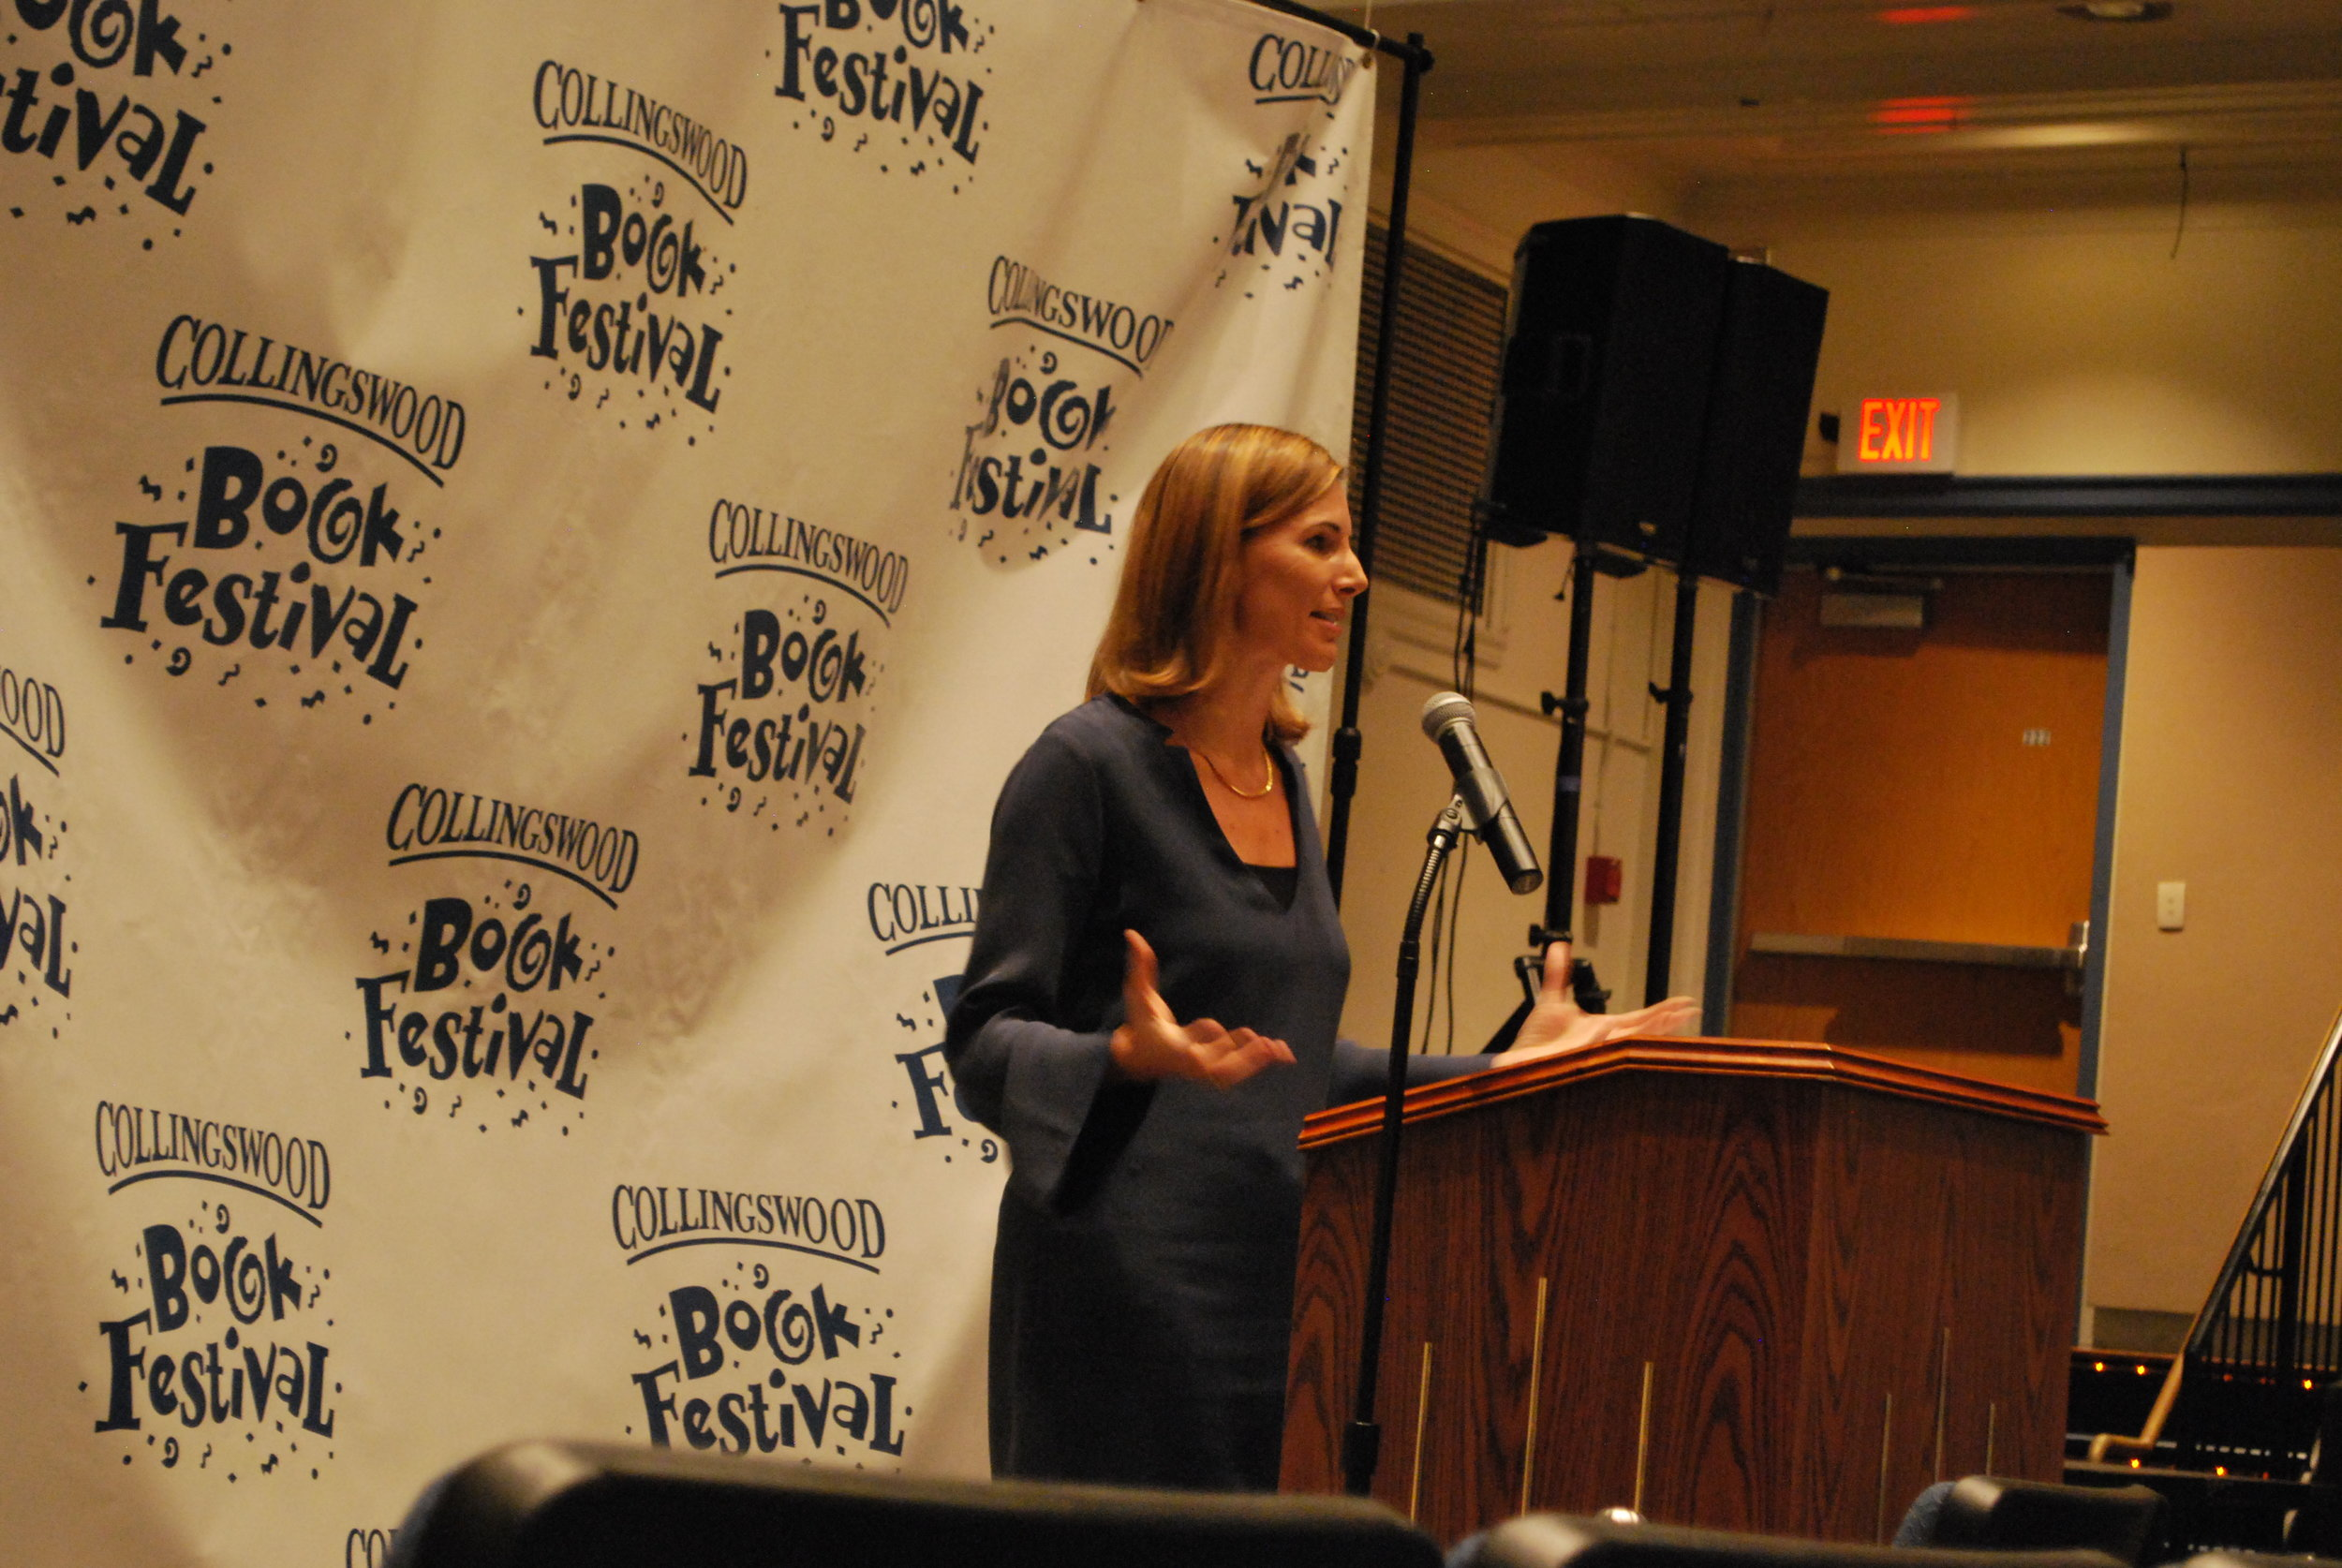 2014 Collingswood Book Festival